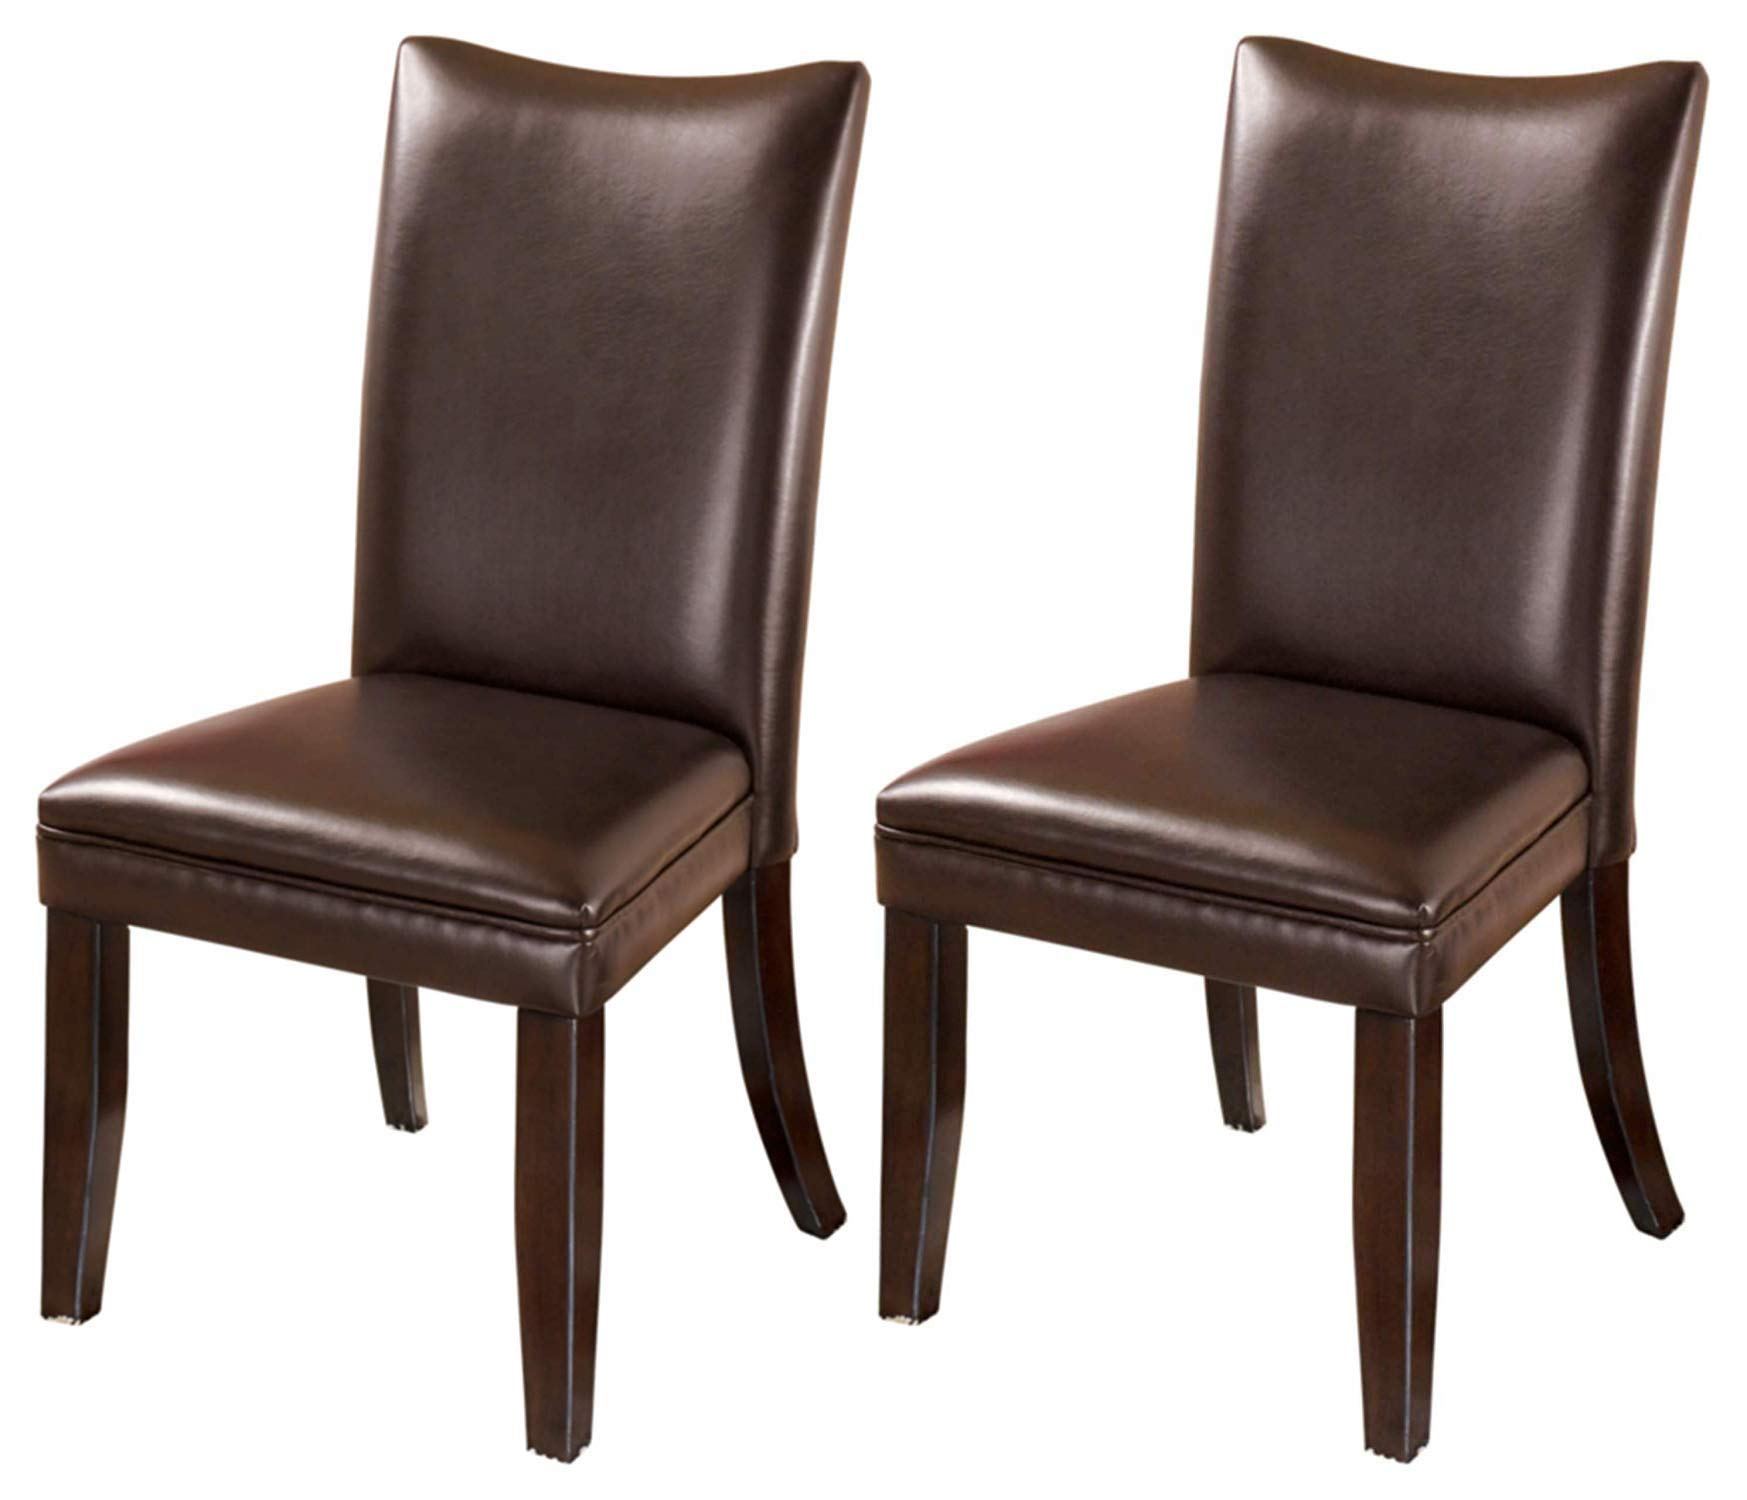 Ashley Furniture Signature Design - Charrell Dining Upolstered Side Chair - Set of 2 - Medium Brown by Signature Design by Ashley